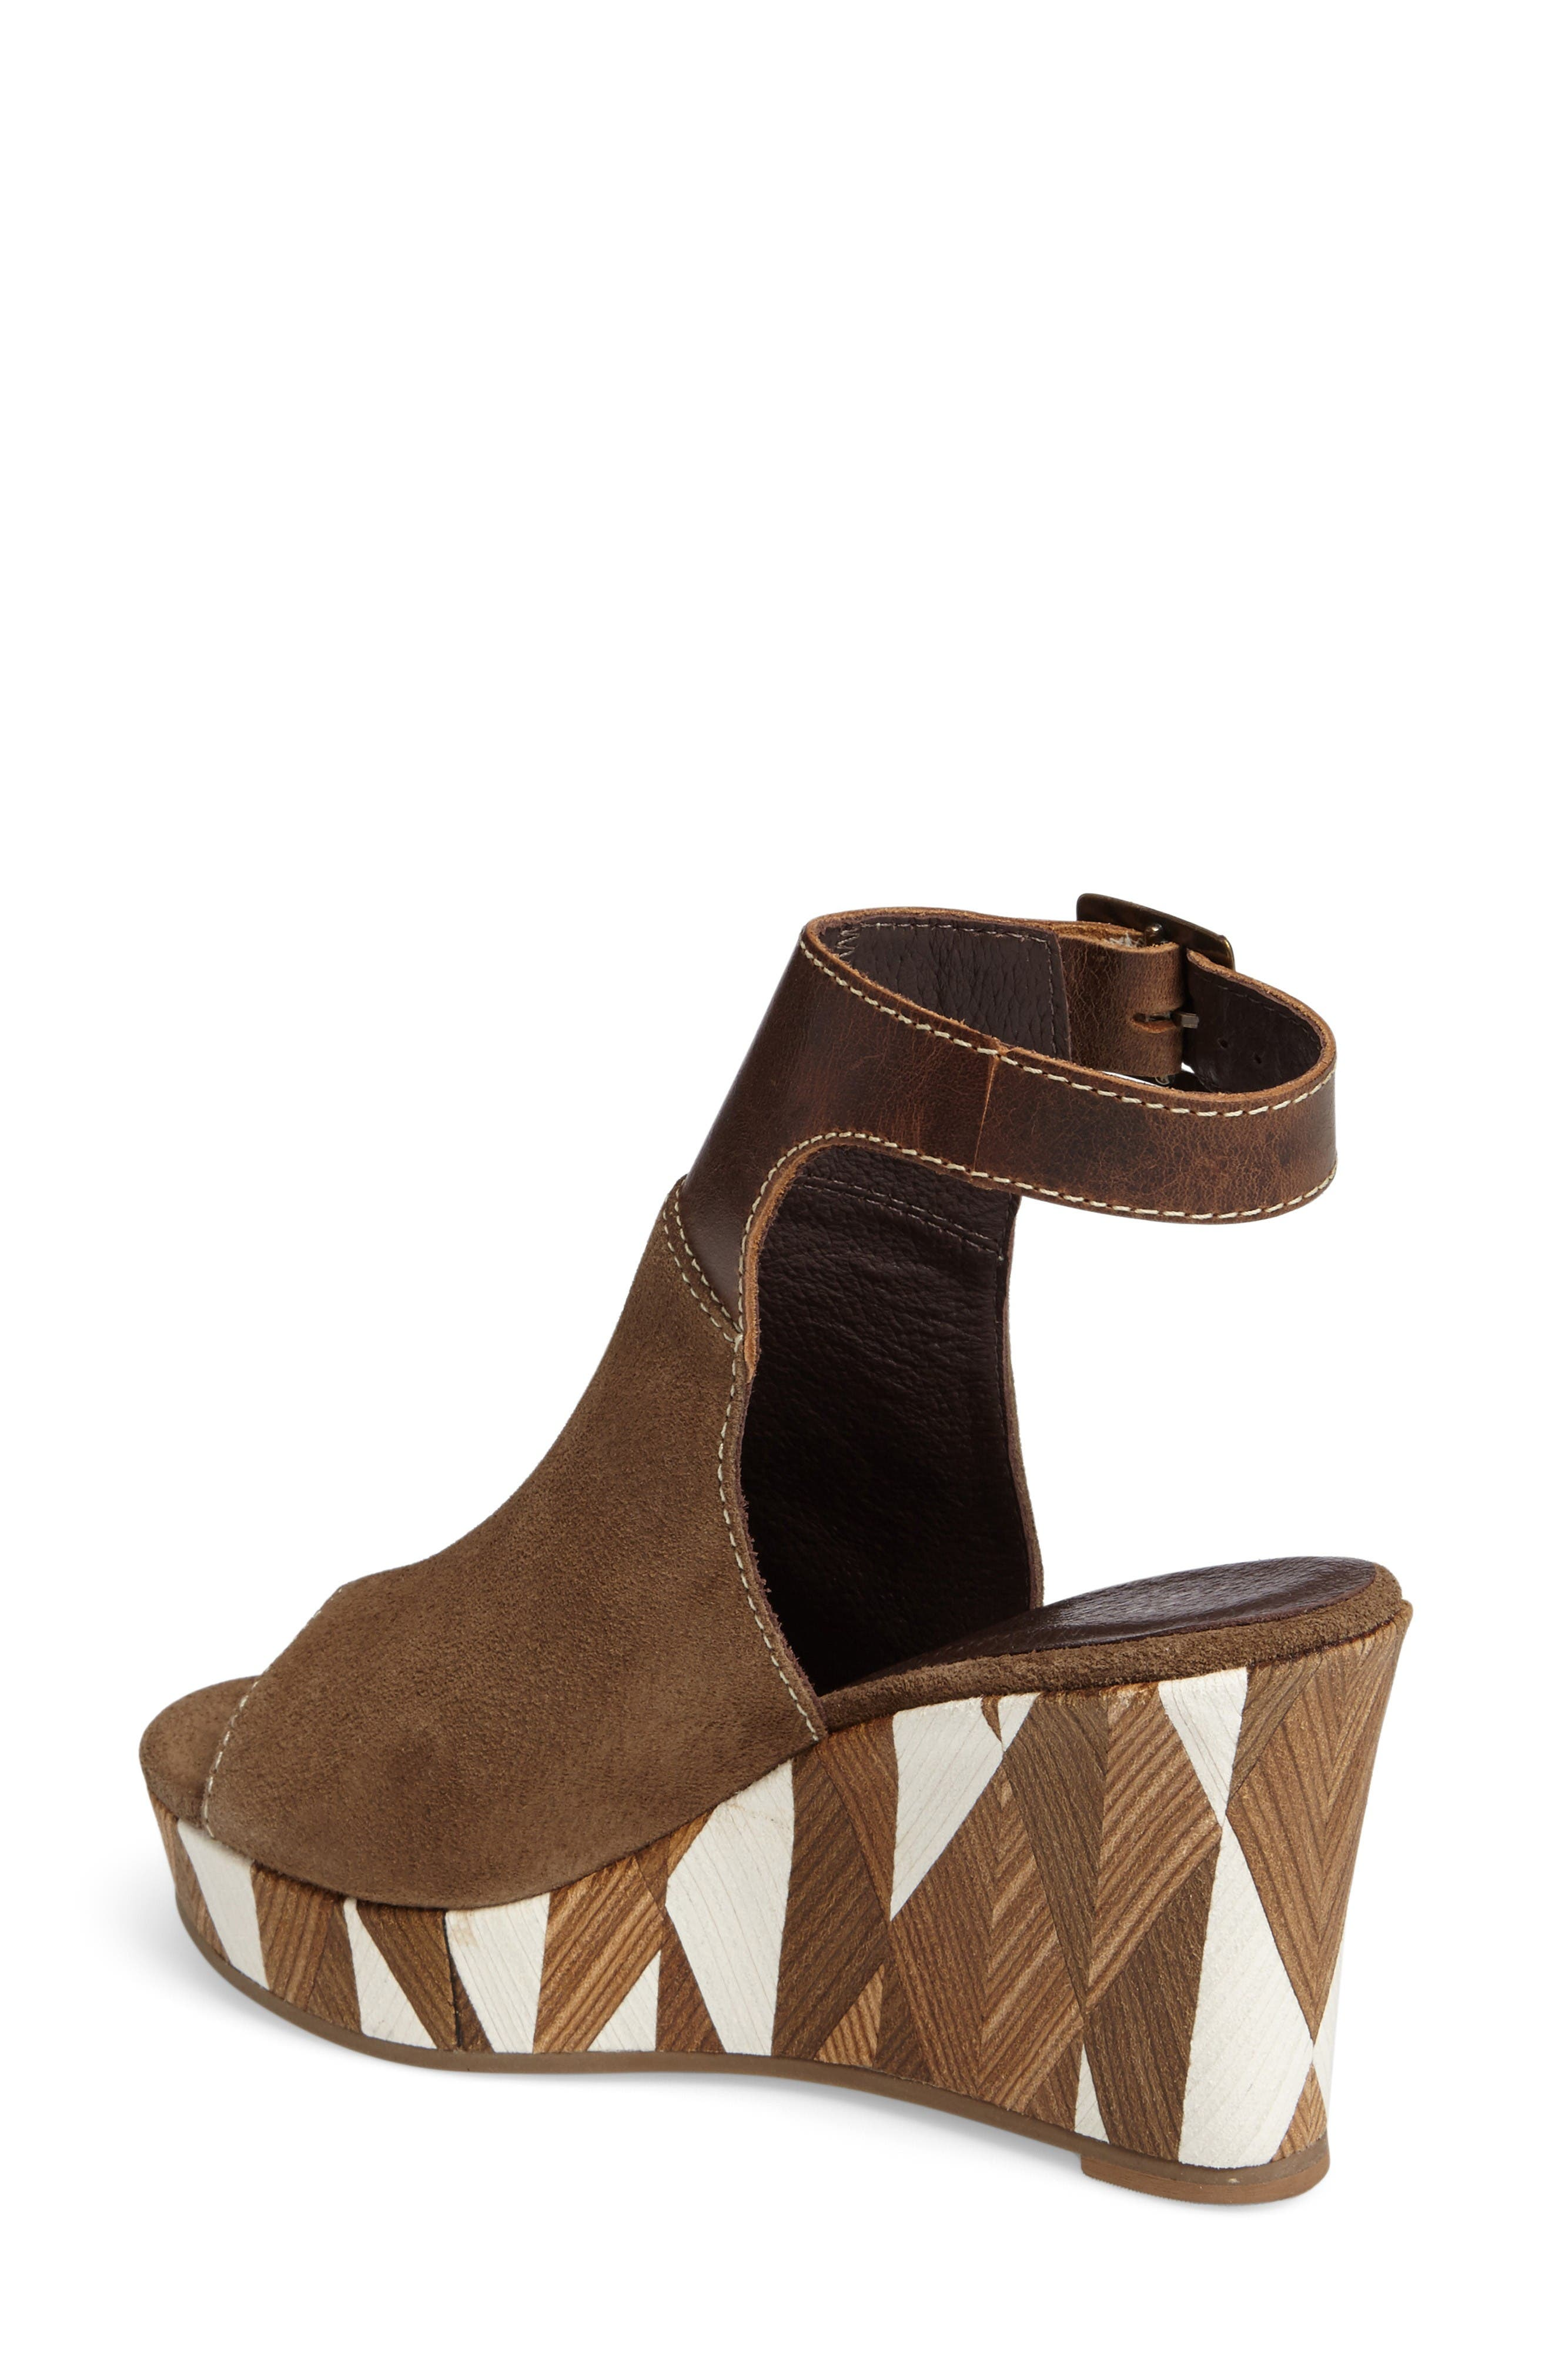 Harlequin Wedge Sandal,                             Alternate thumbnail 2, color,                             Taupe Leather